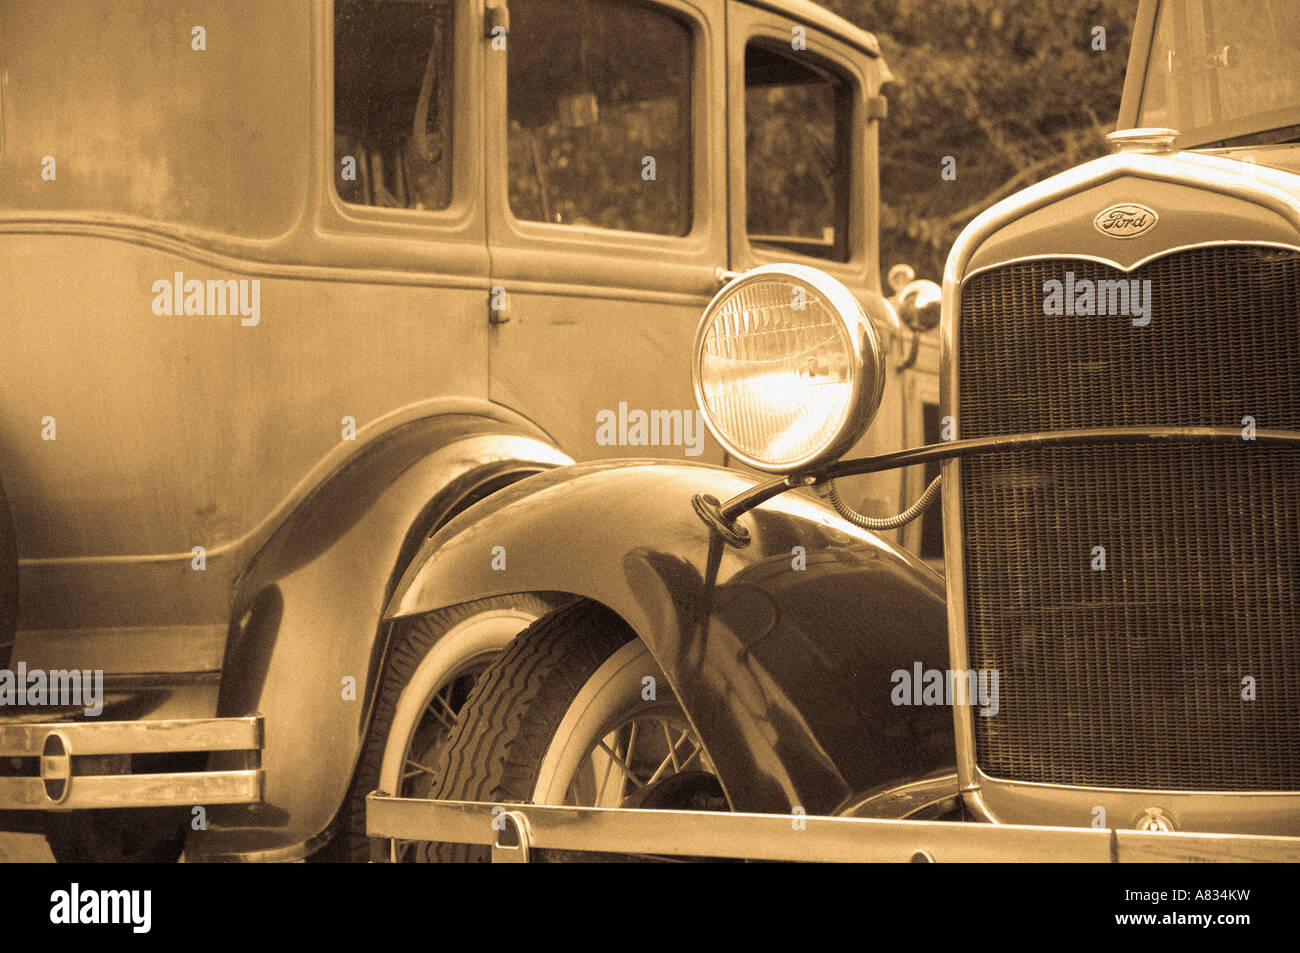 A couple of automobiles from the early 1930s; full description below. - Stock Image